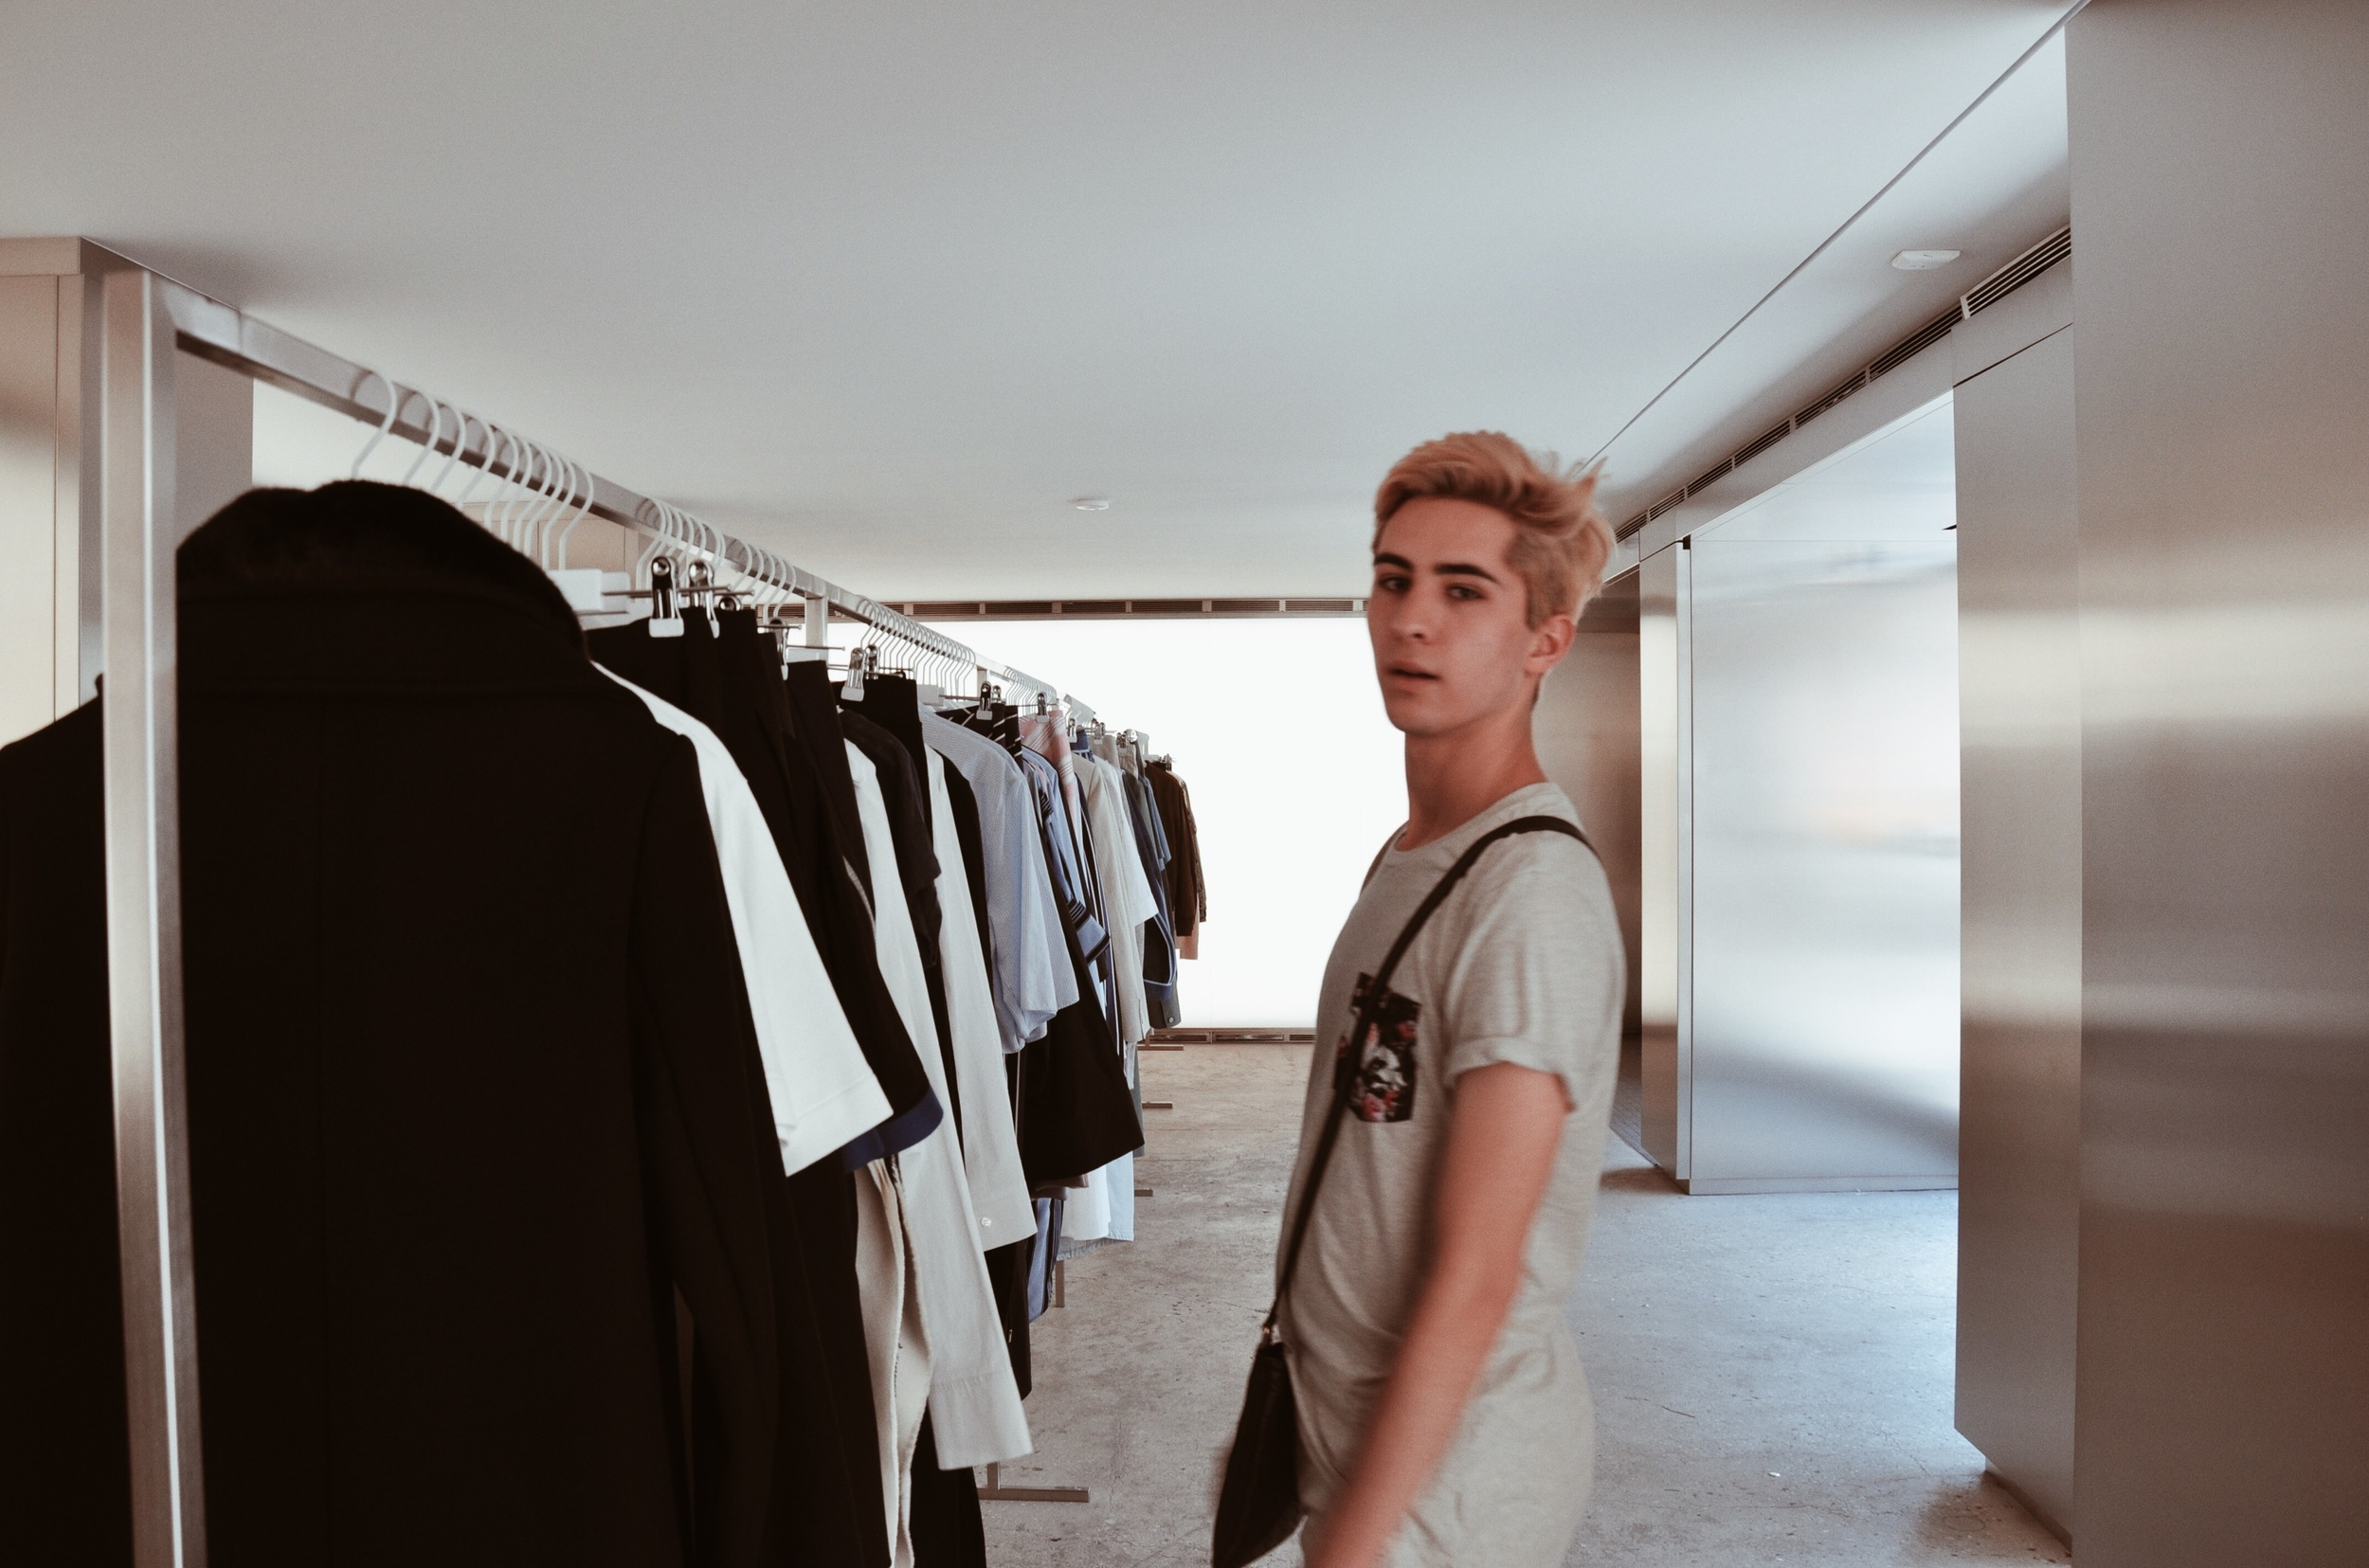 Shopping in Acne Studios on Horatio Street in the Meatpacking District (NYC).